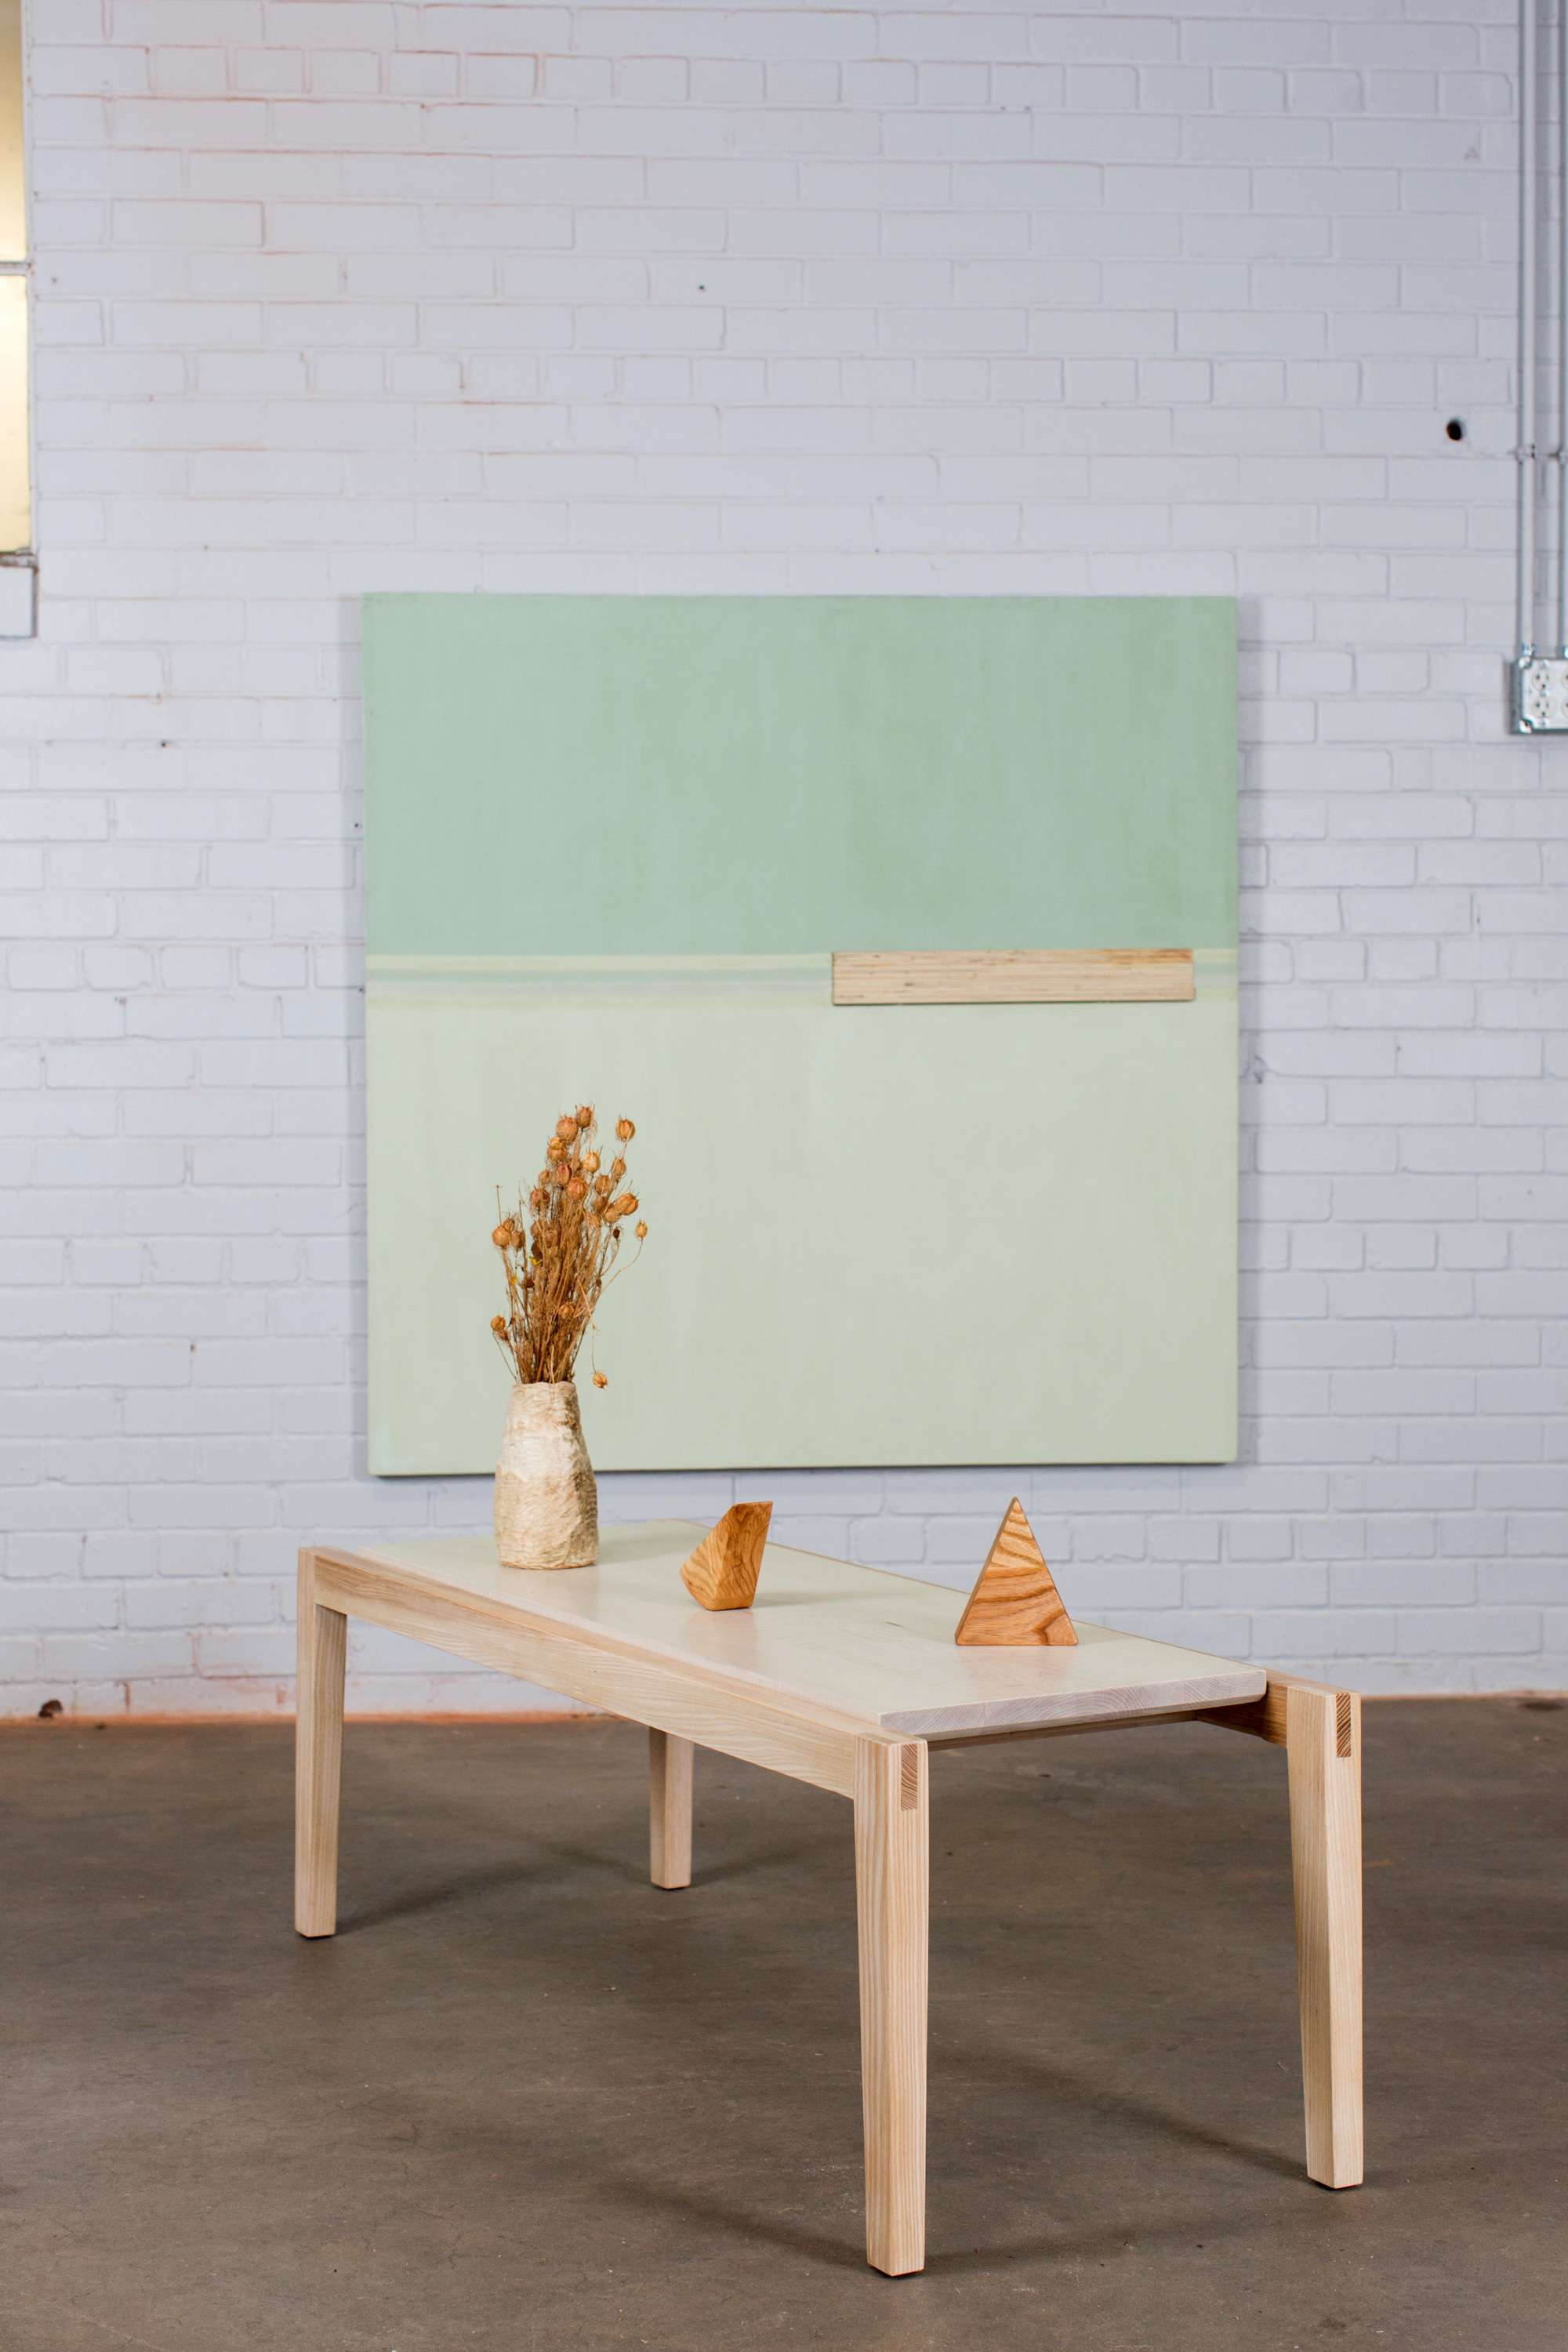 Radvalley Designs Wallace table